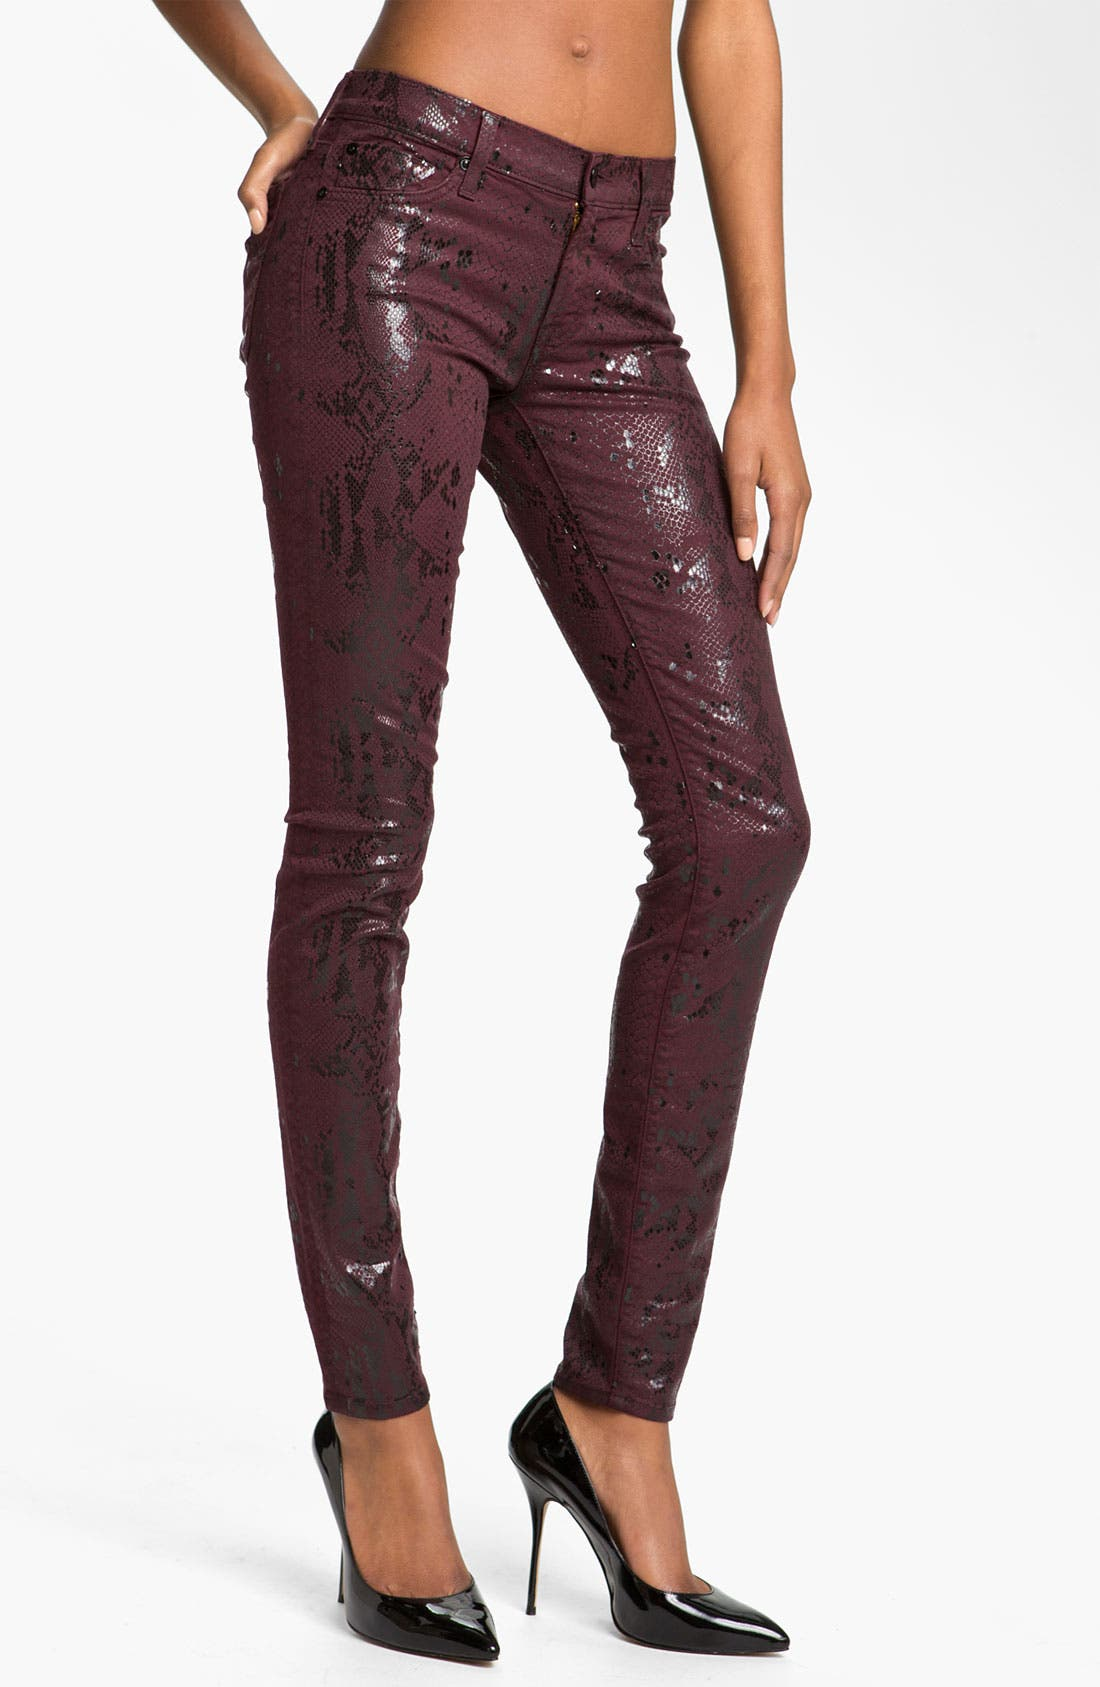 Main Image - 7 For All Mankind® 'The Skinny' Print Stretch Jeans (Burgundy Snake)